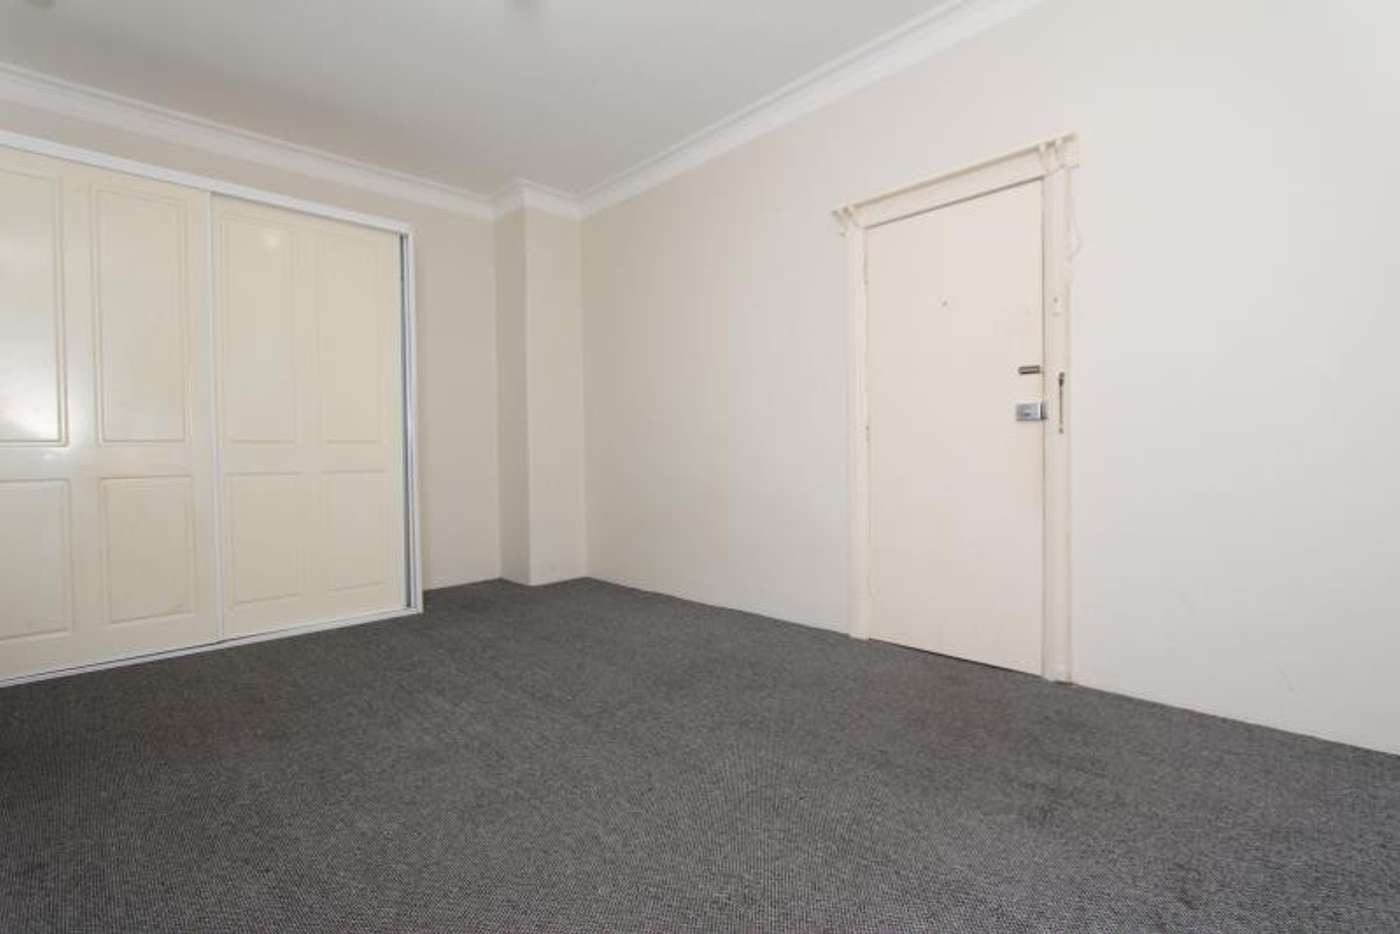 Main view of Homely apartment listing, 11/240 Campbell Parade, Bondi Beach NSW 2026